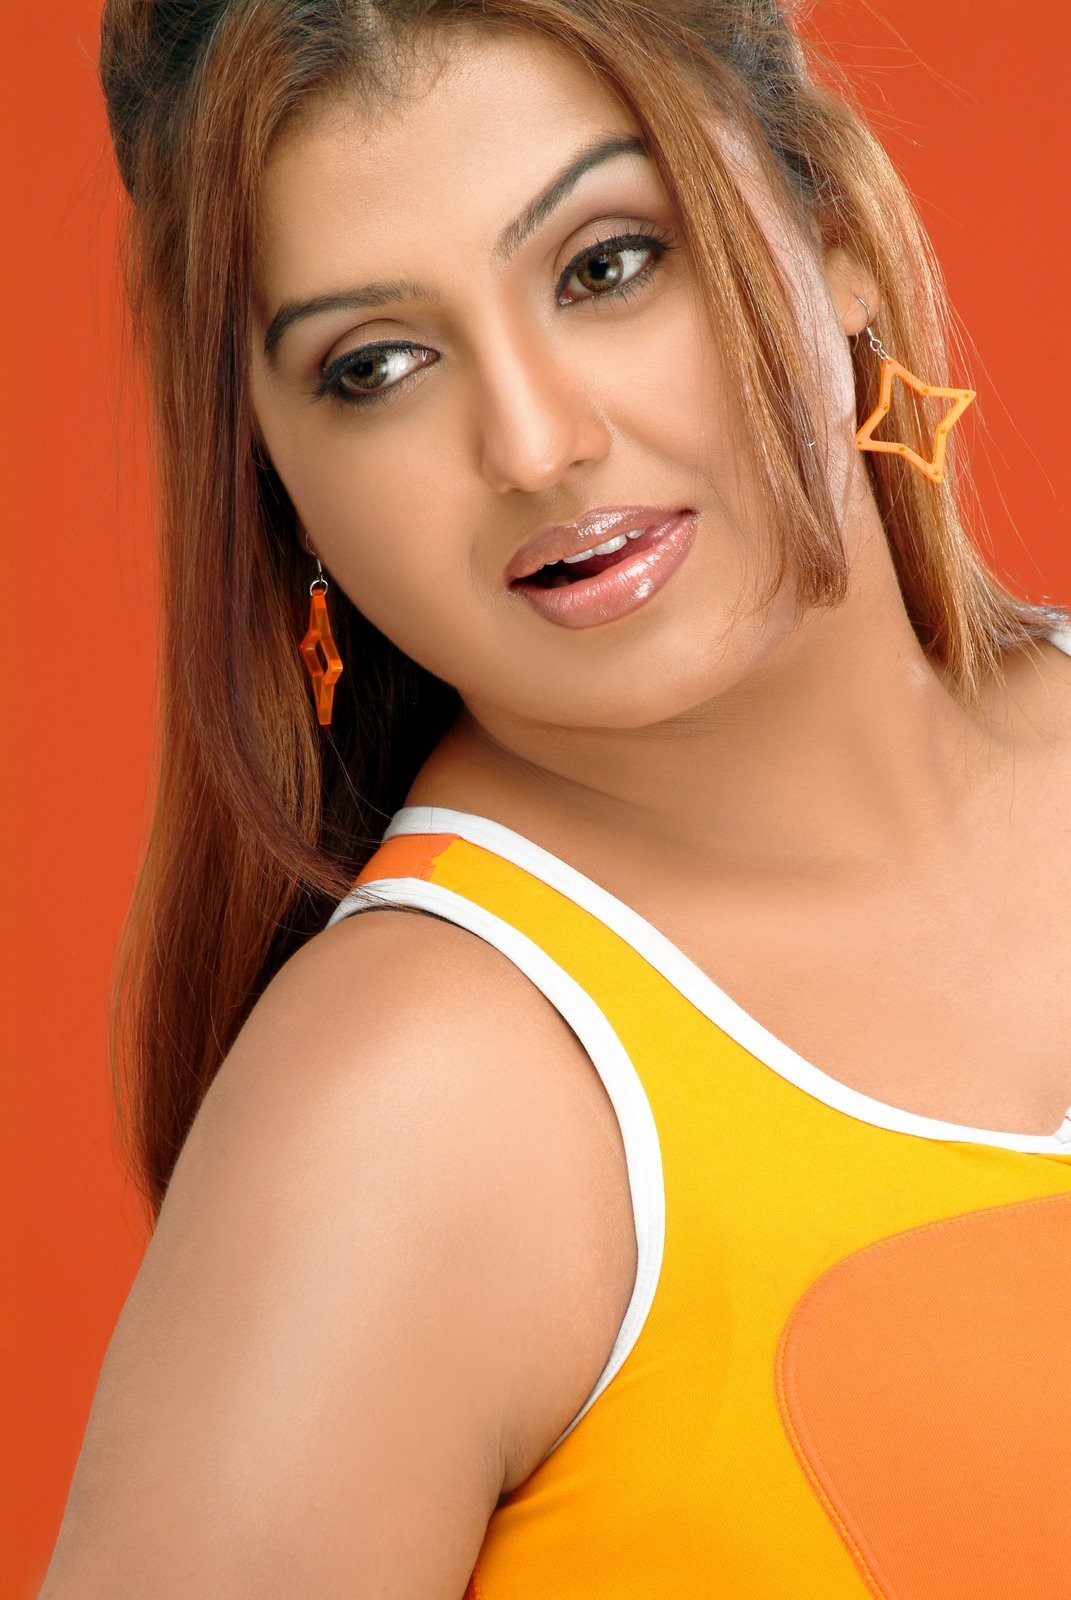 Sona Hot Sexy cleavage, navel & thighs show hot stills